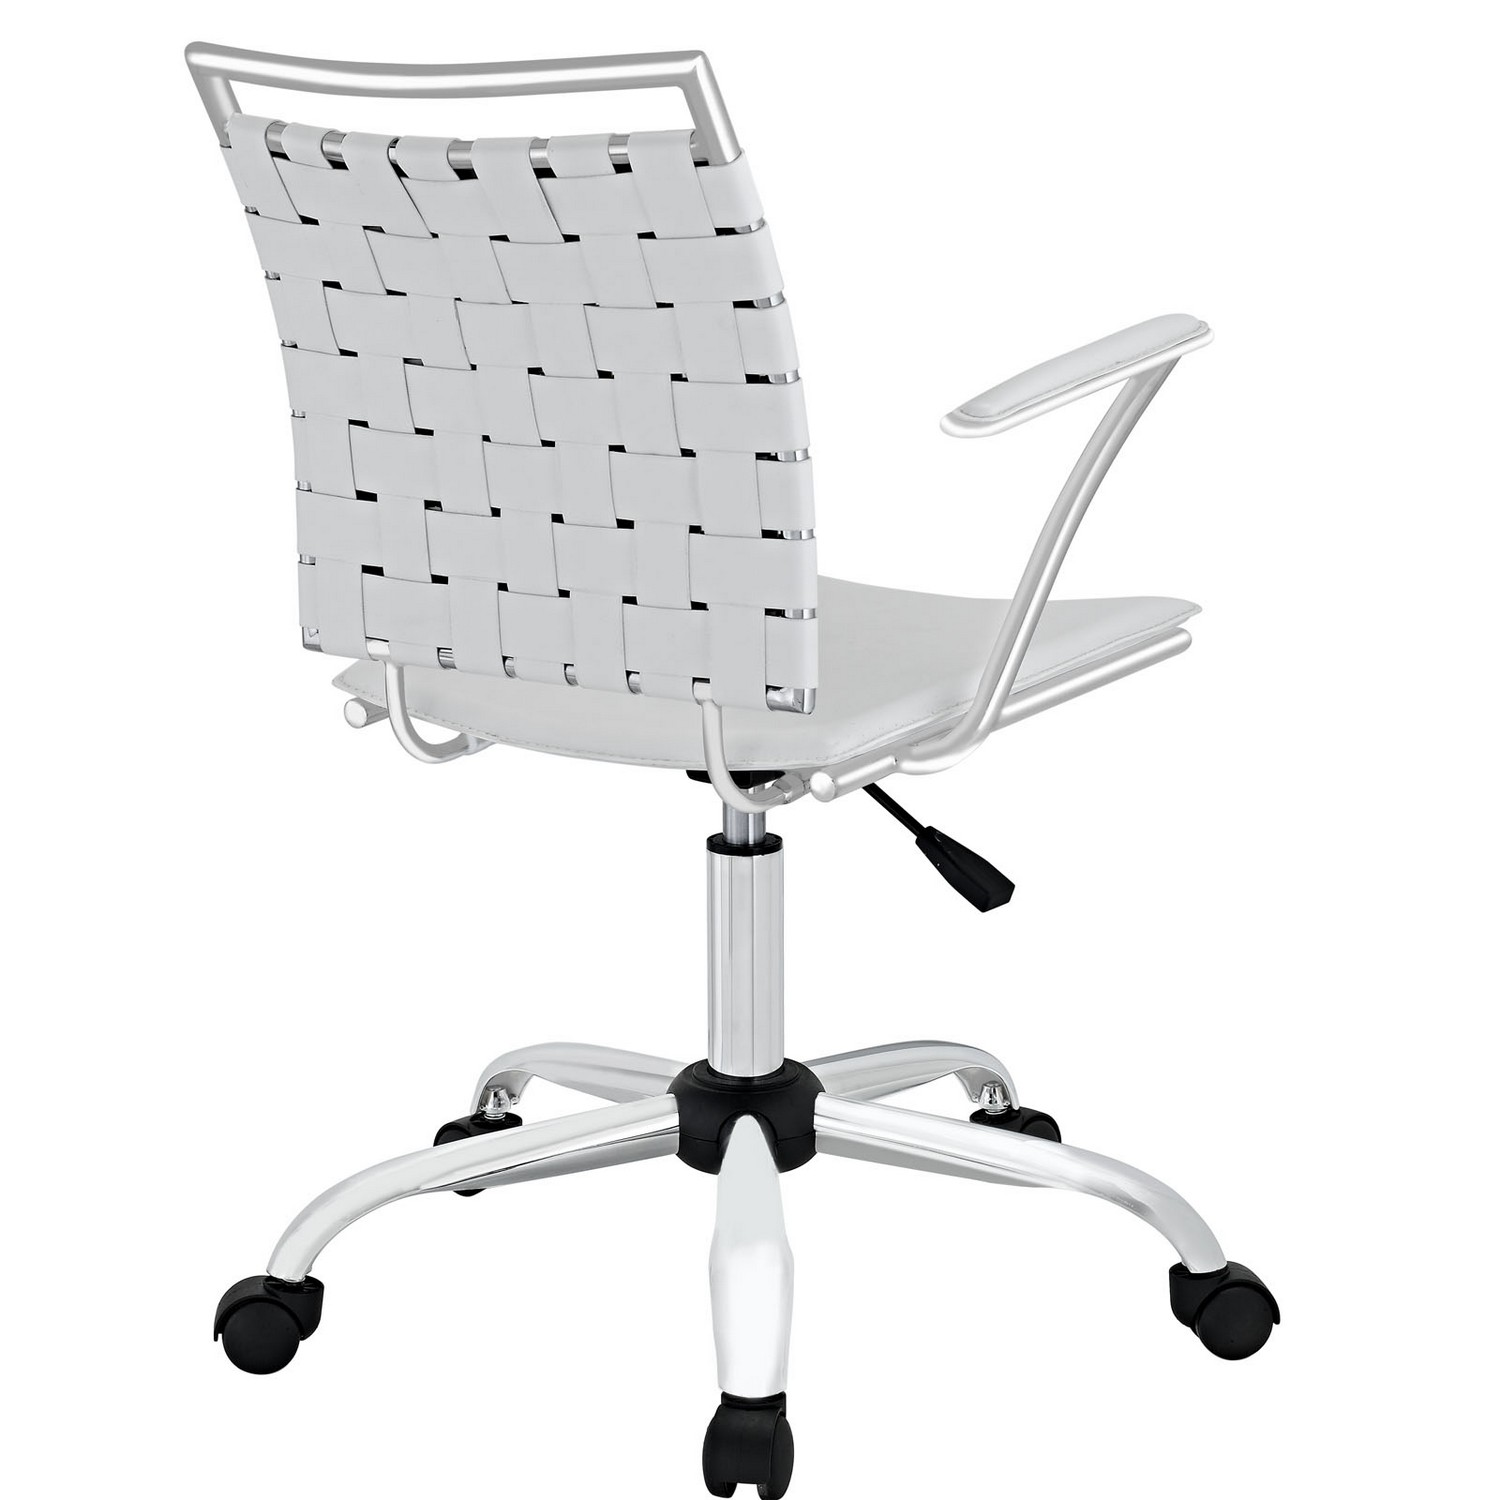 Modway Fuse Office Chair - White